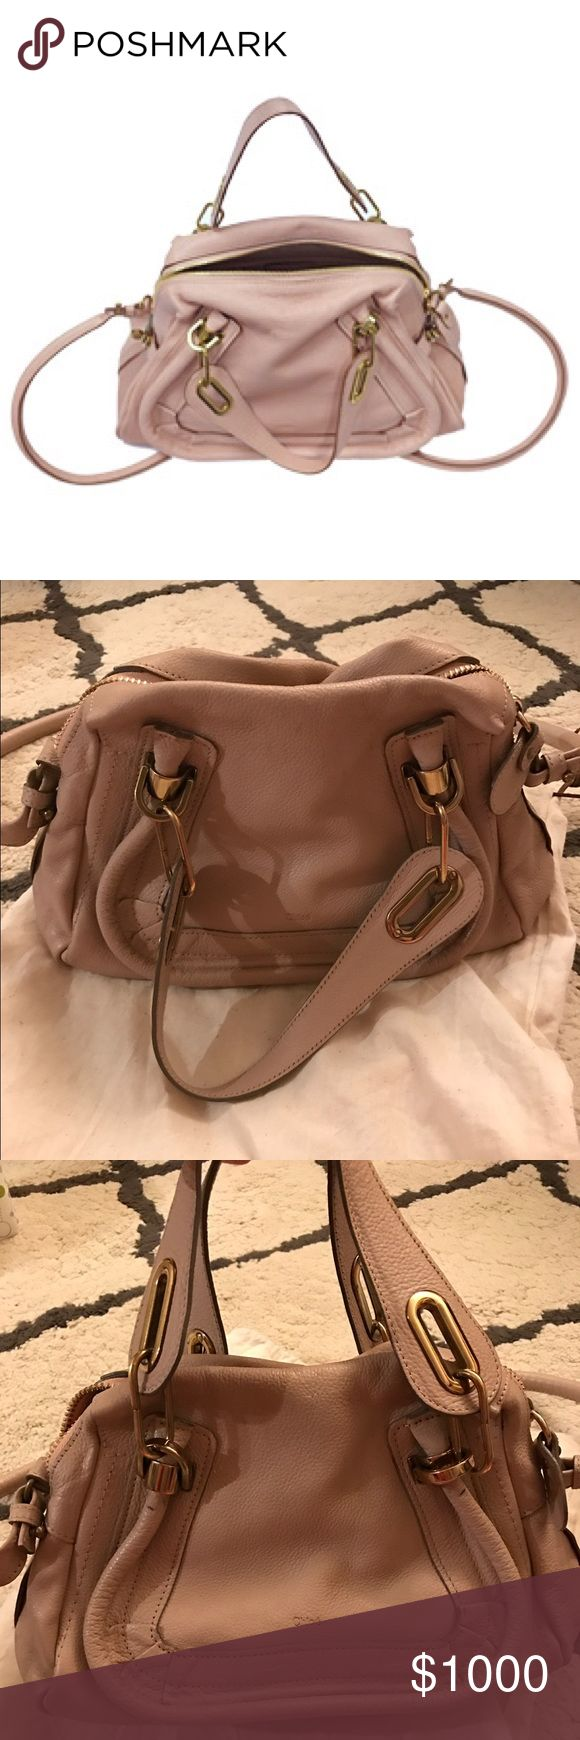 Chloe Paraty Anemone Pink Small Small Chloe Paraty in Anemone Pink. Few marks on the leather around and from the hardware which is common for this bag. Also, a few marks on the leather as shown in the pictures. The interior is very clean. Bag is in great and gently used condition. No trades. Chloe Bags